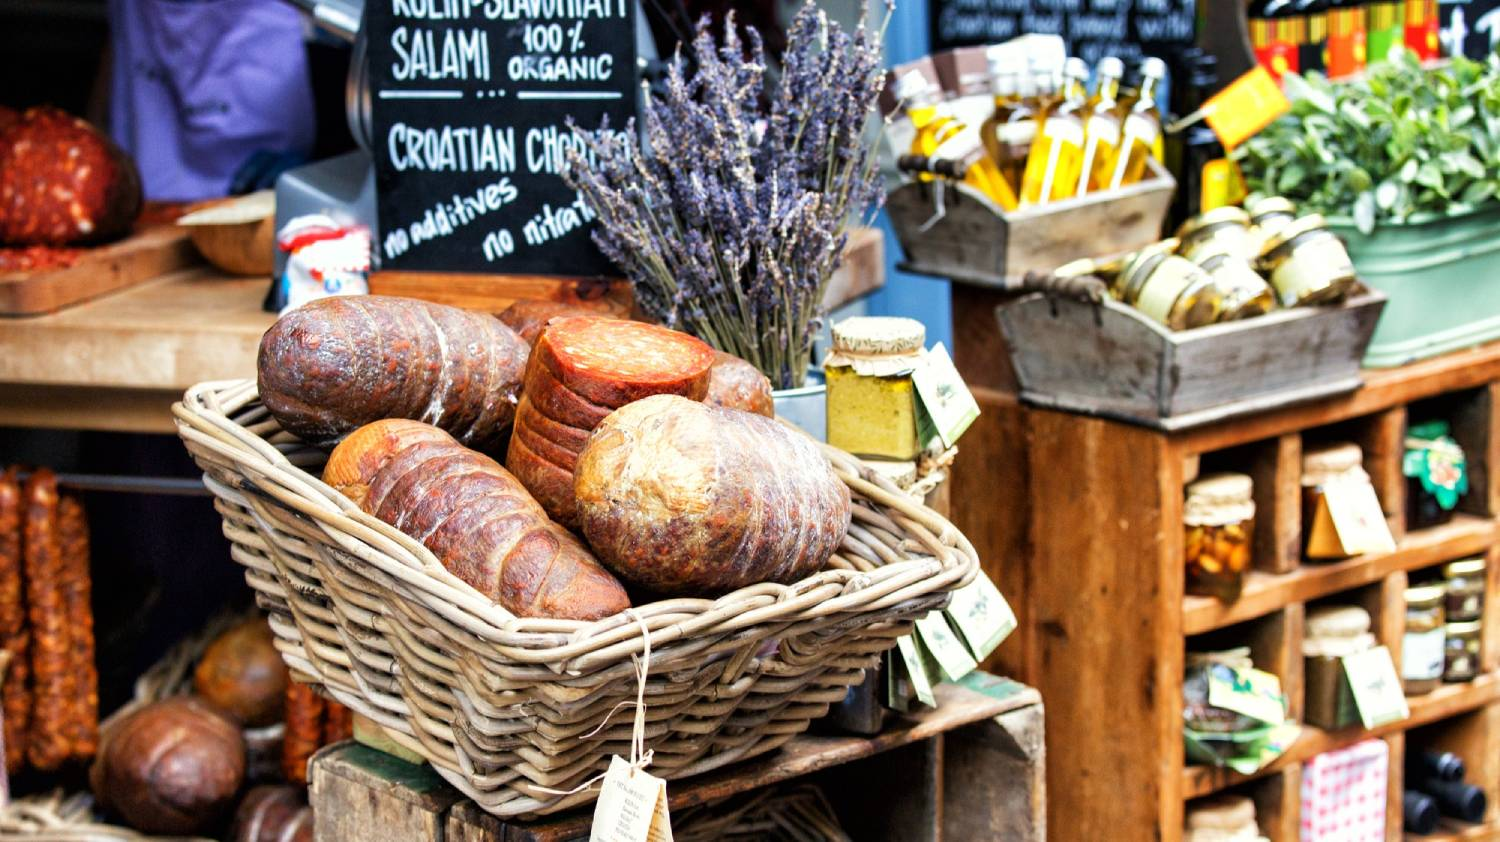 Borough Market - Things To Do In London